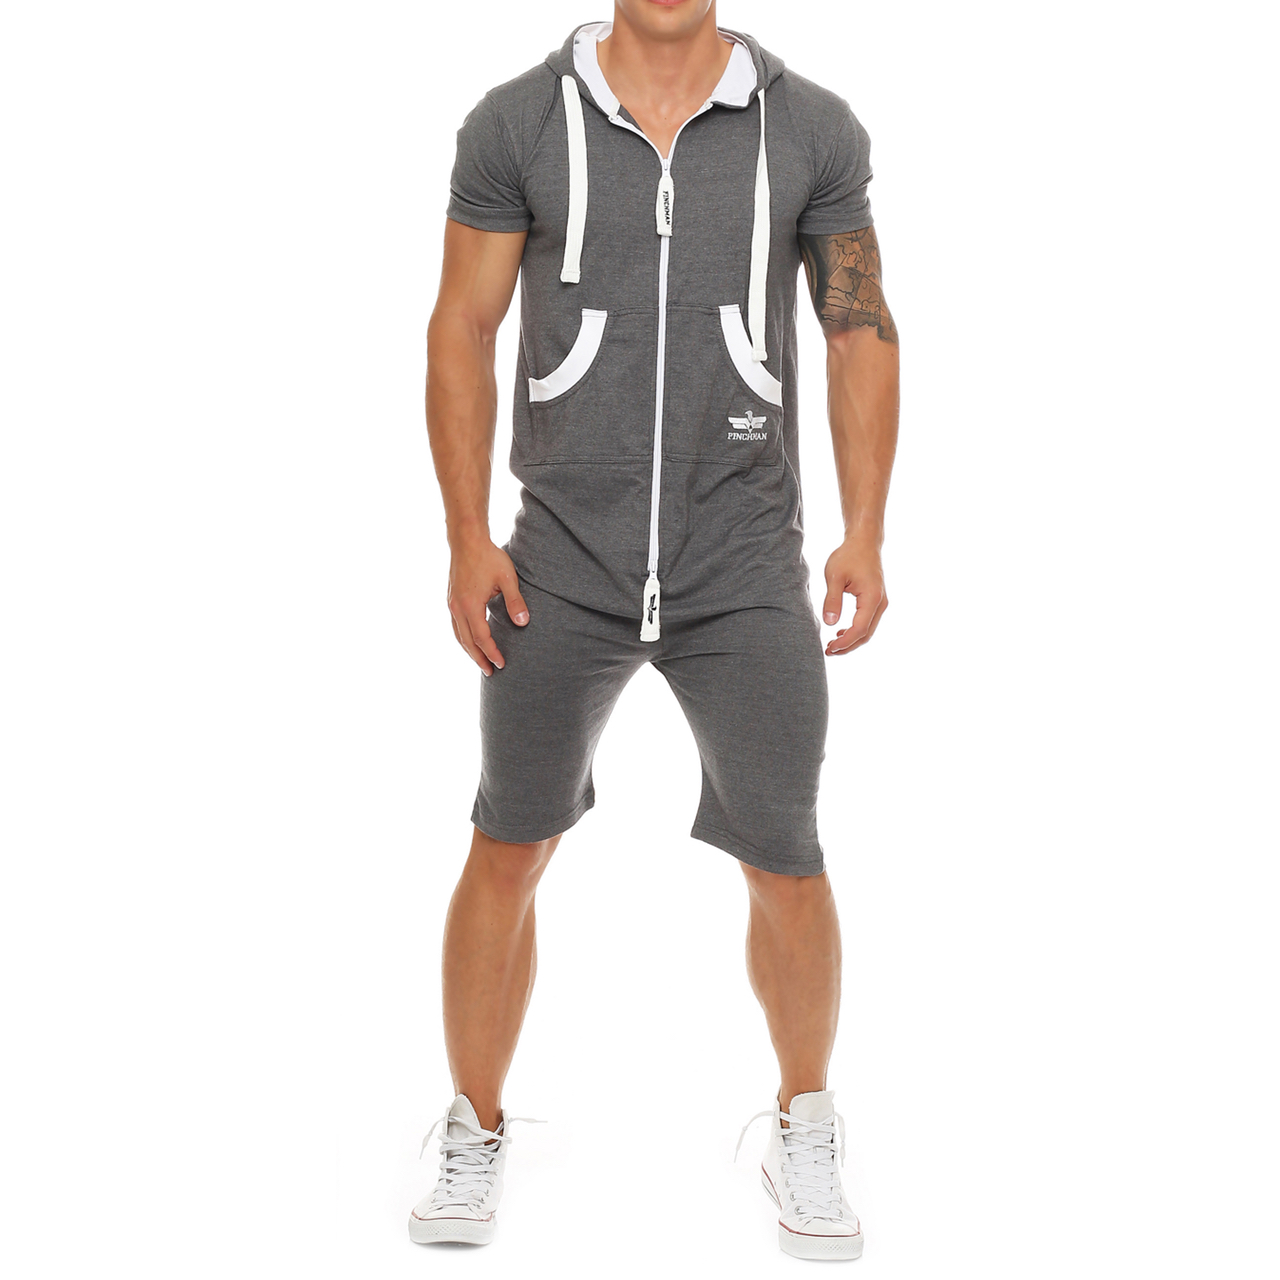 finchman herren sommerjumpsuit kurz anzug overall onesie jumpsuit camouflage ebay. Black Bedroom Furniture Sets. Home Design Ideas